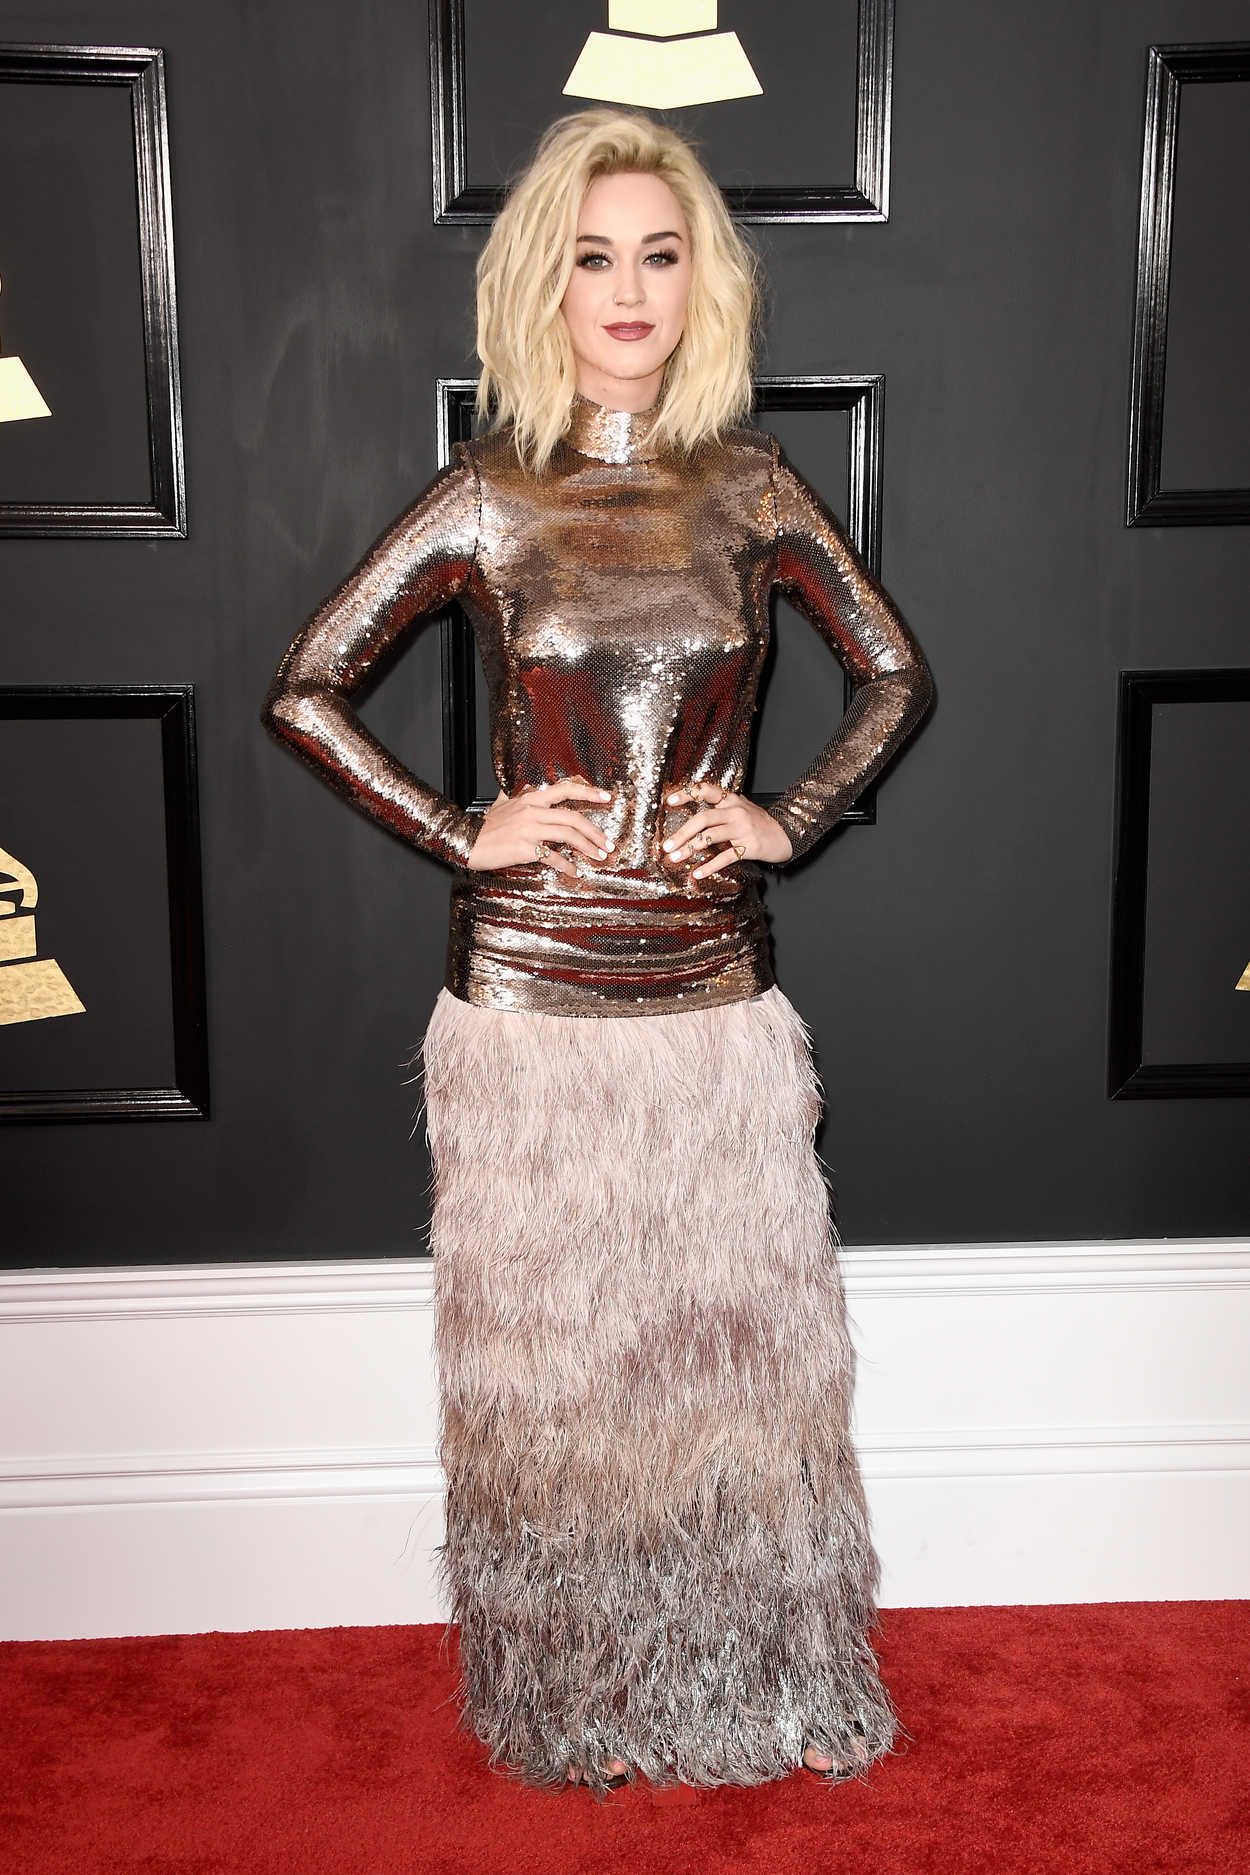 Katy Perry At The 59th Grammy Awards In Los Angeles 02 12